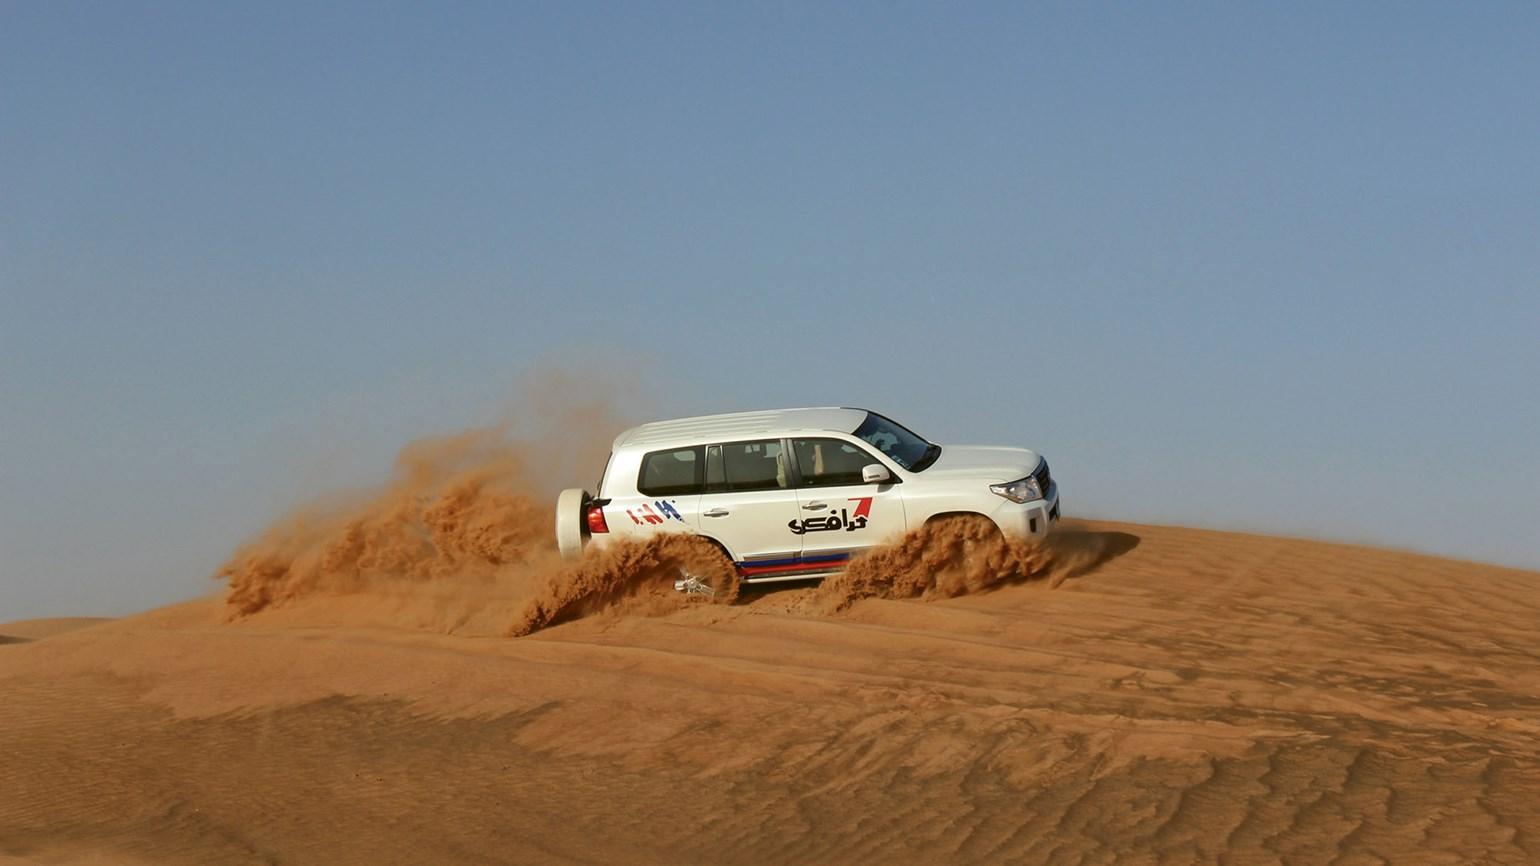 Off-roading UAE-style outside Dubai